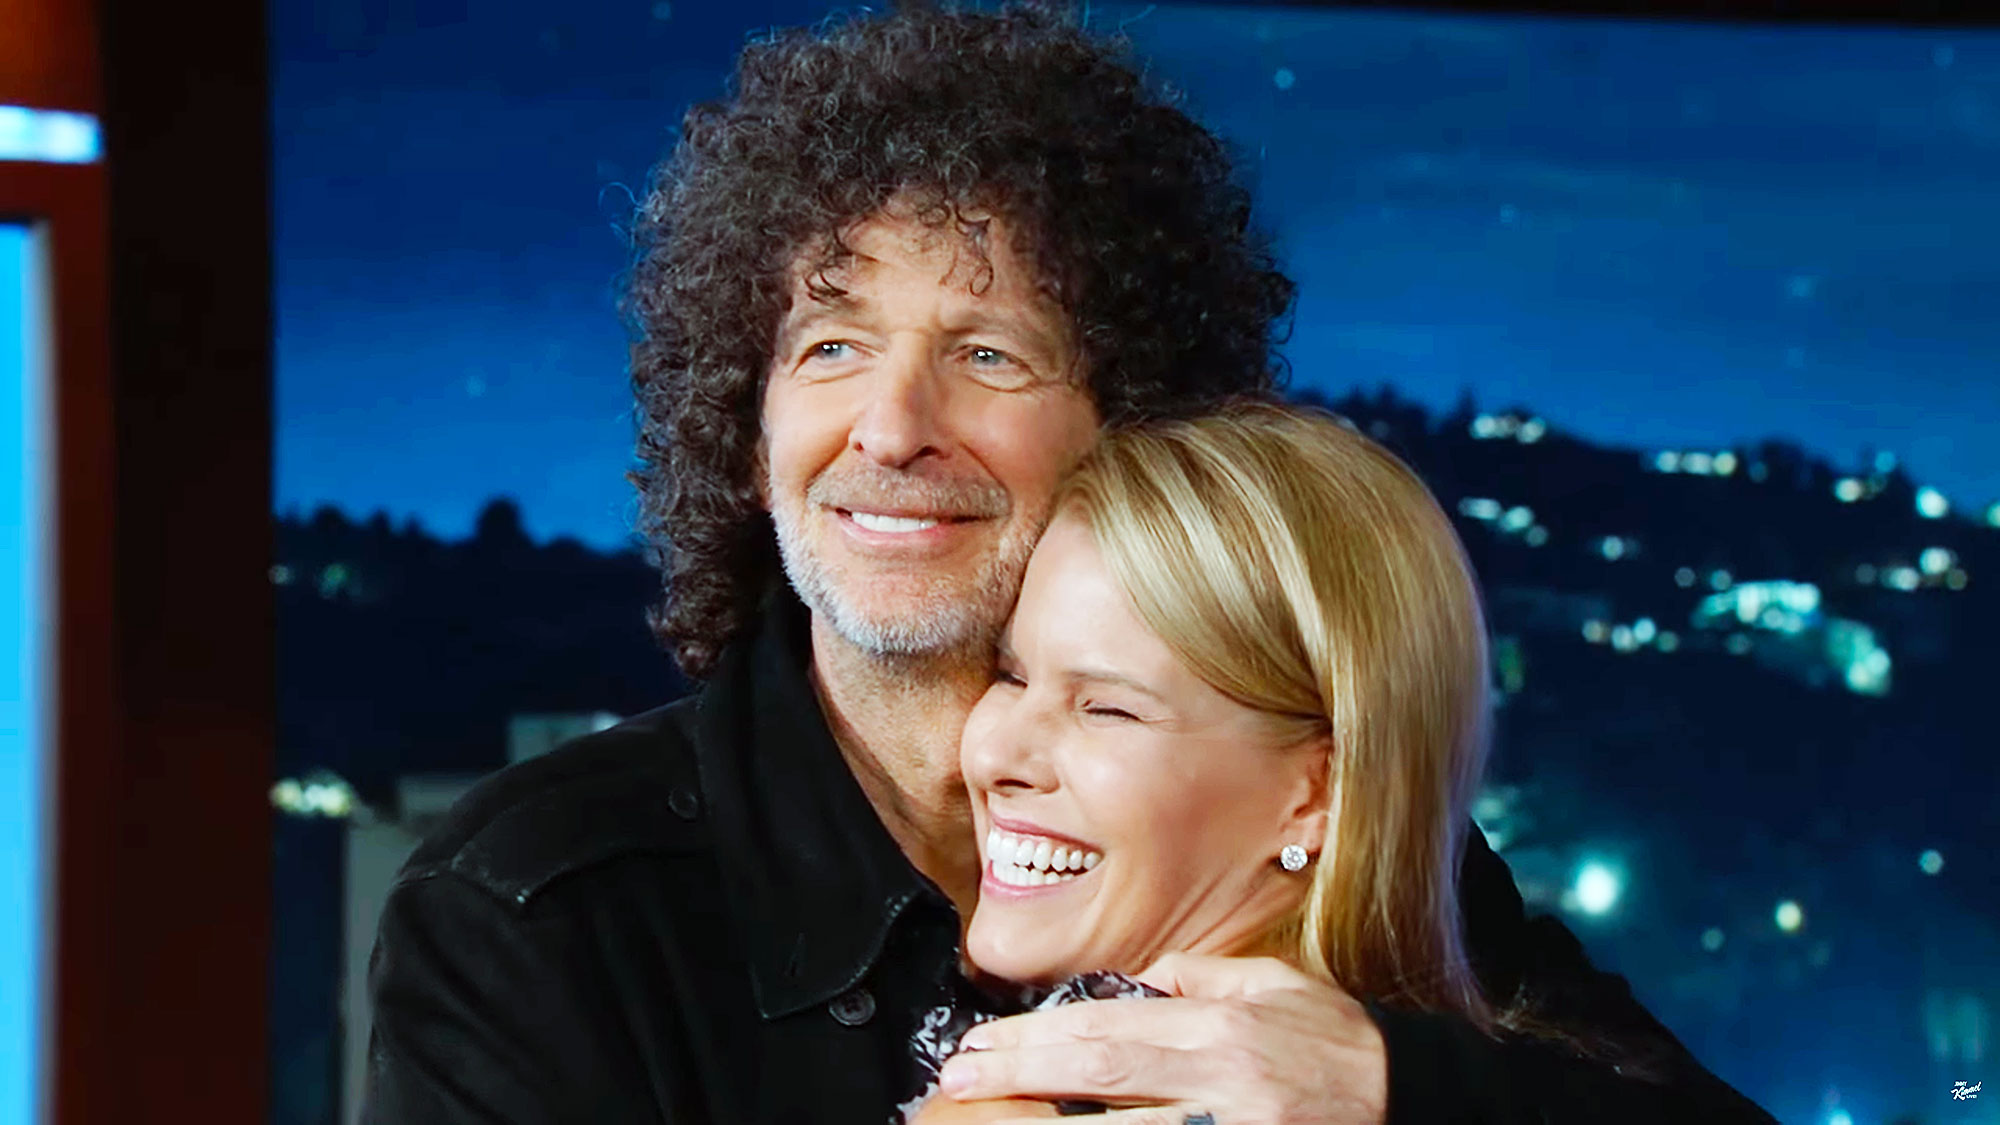 Howard Stern Proposes to His Wife of 11 Years Beth Stern on Jimmy Kimmel Live